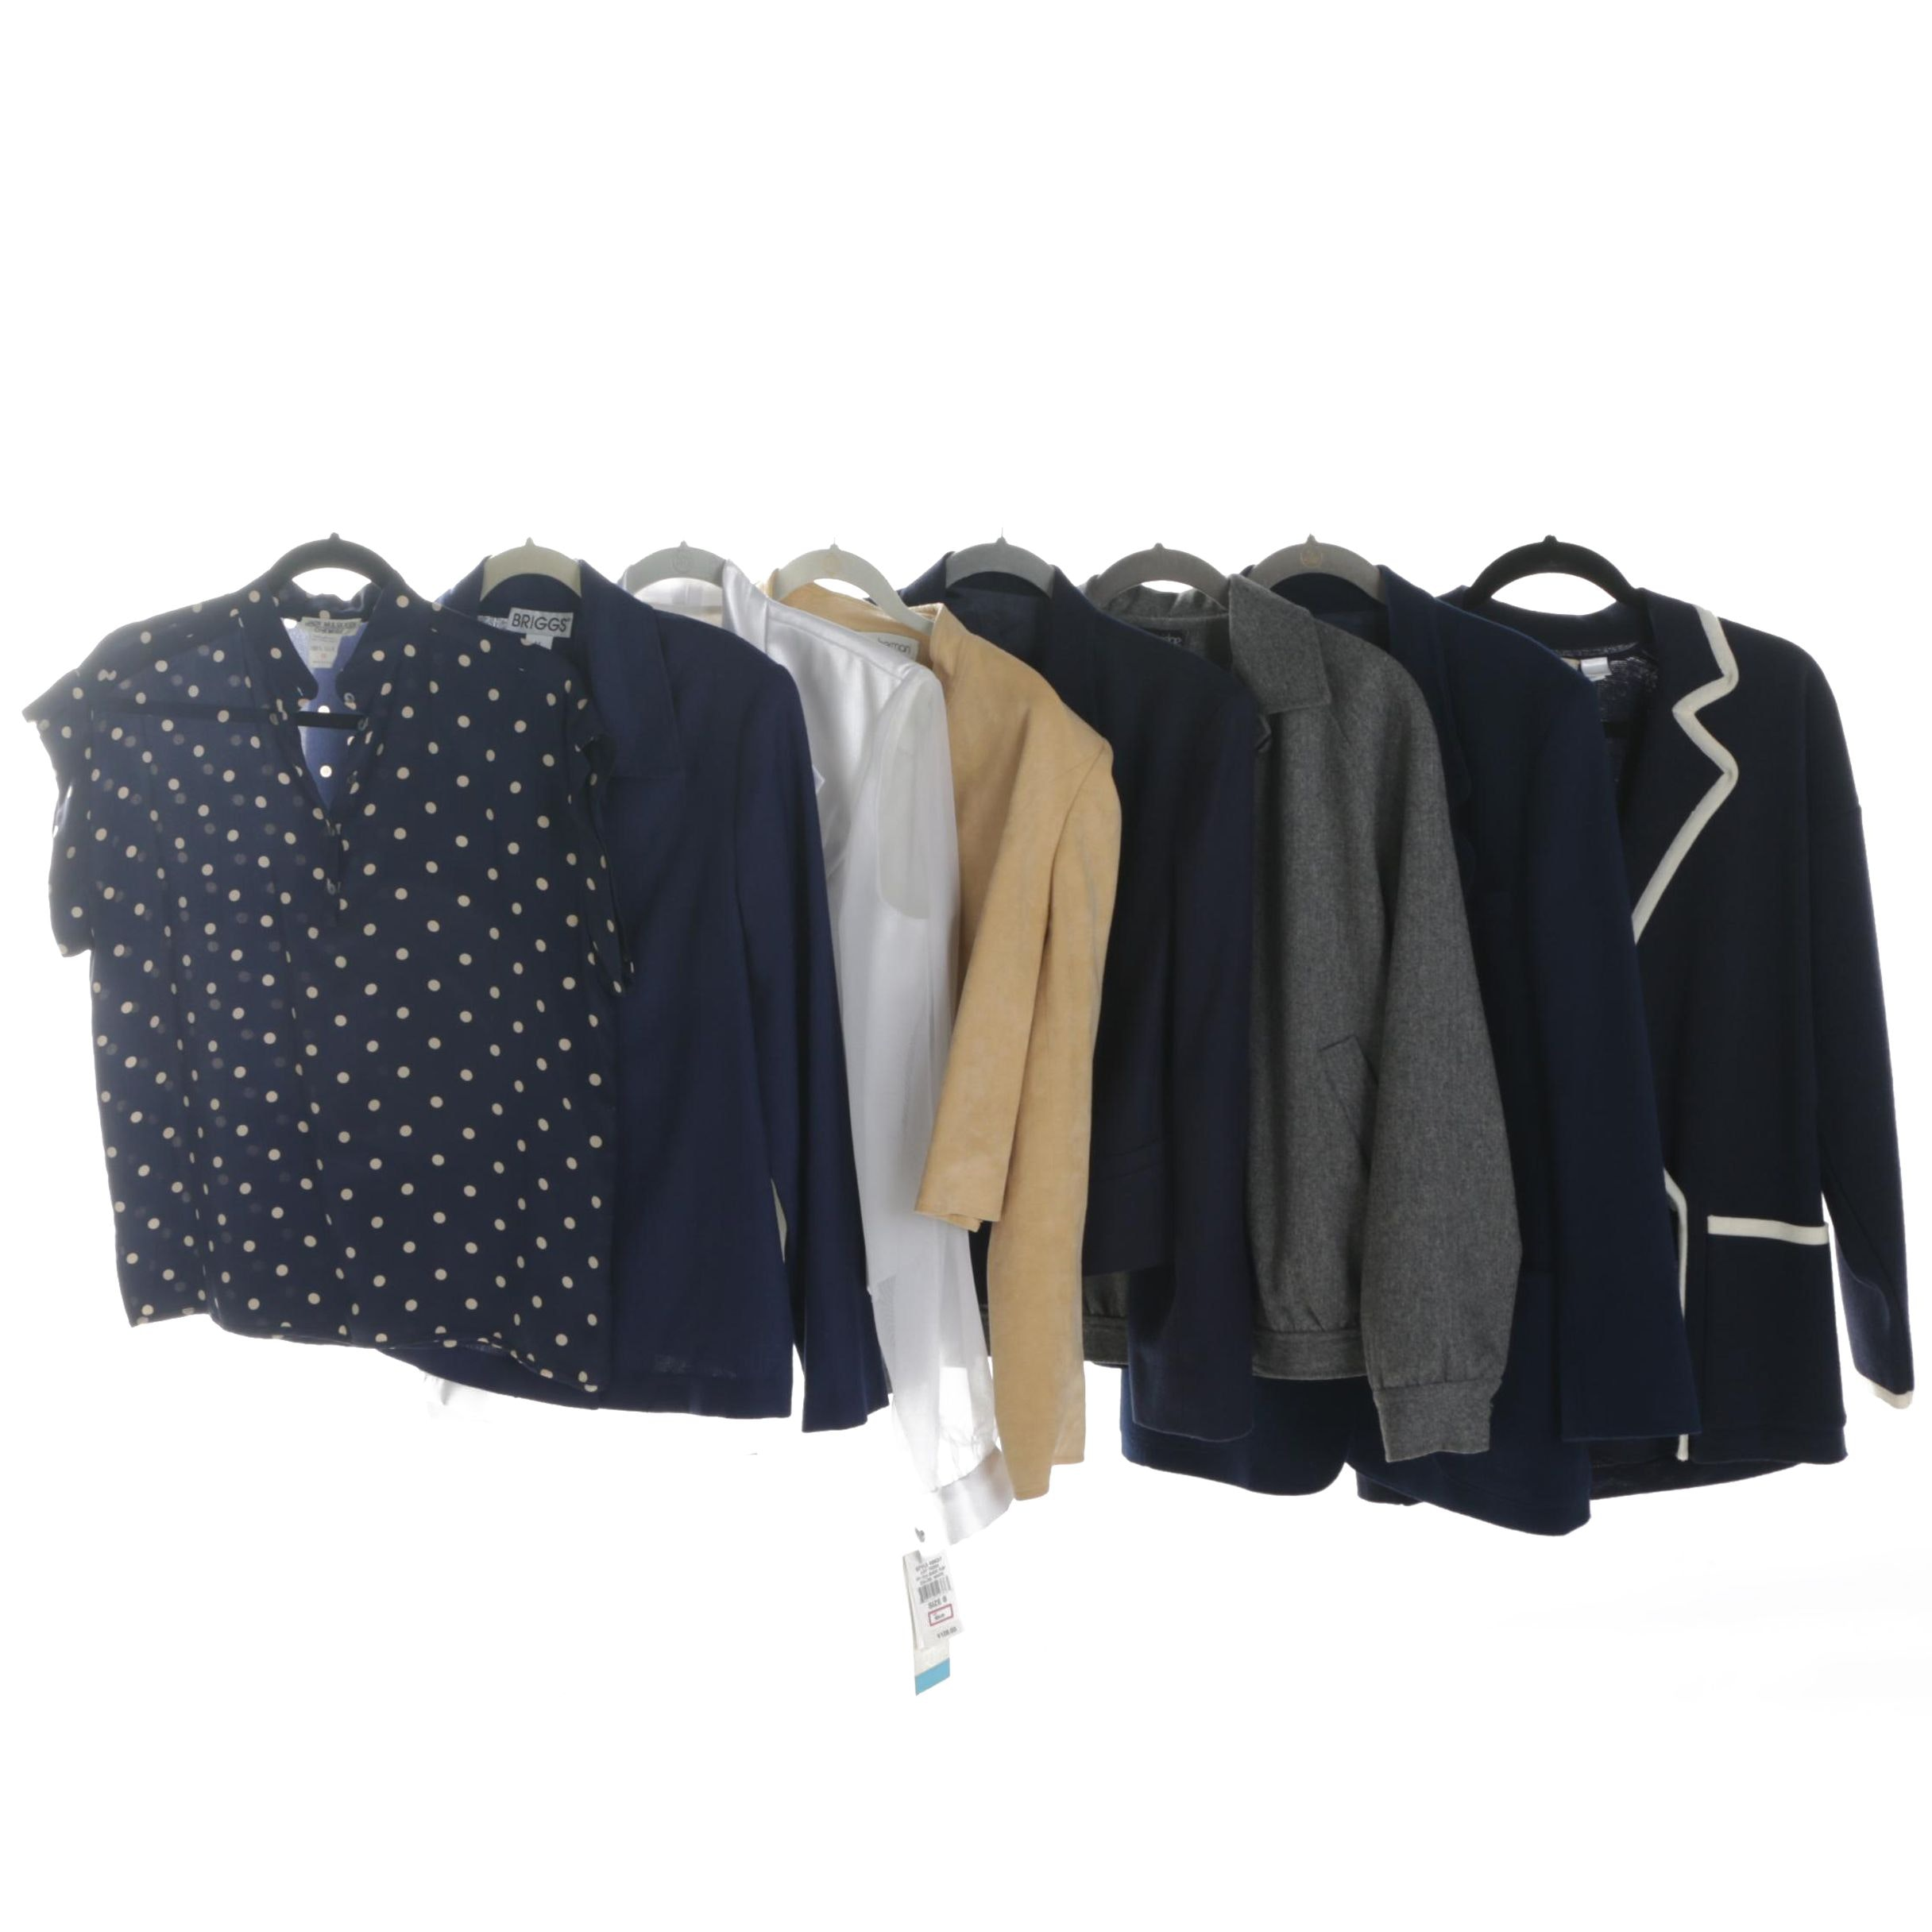 Women's Blouses, Blazers and Jackets